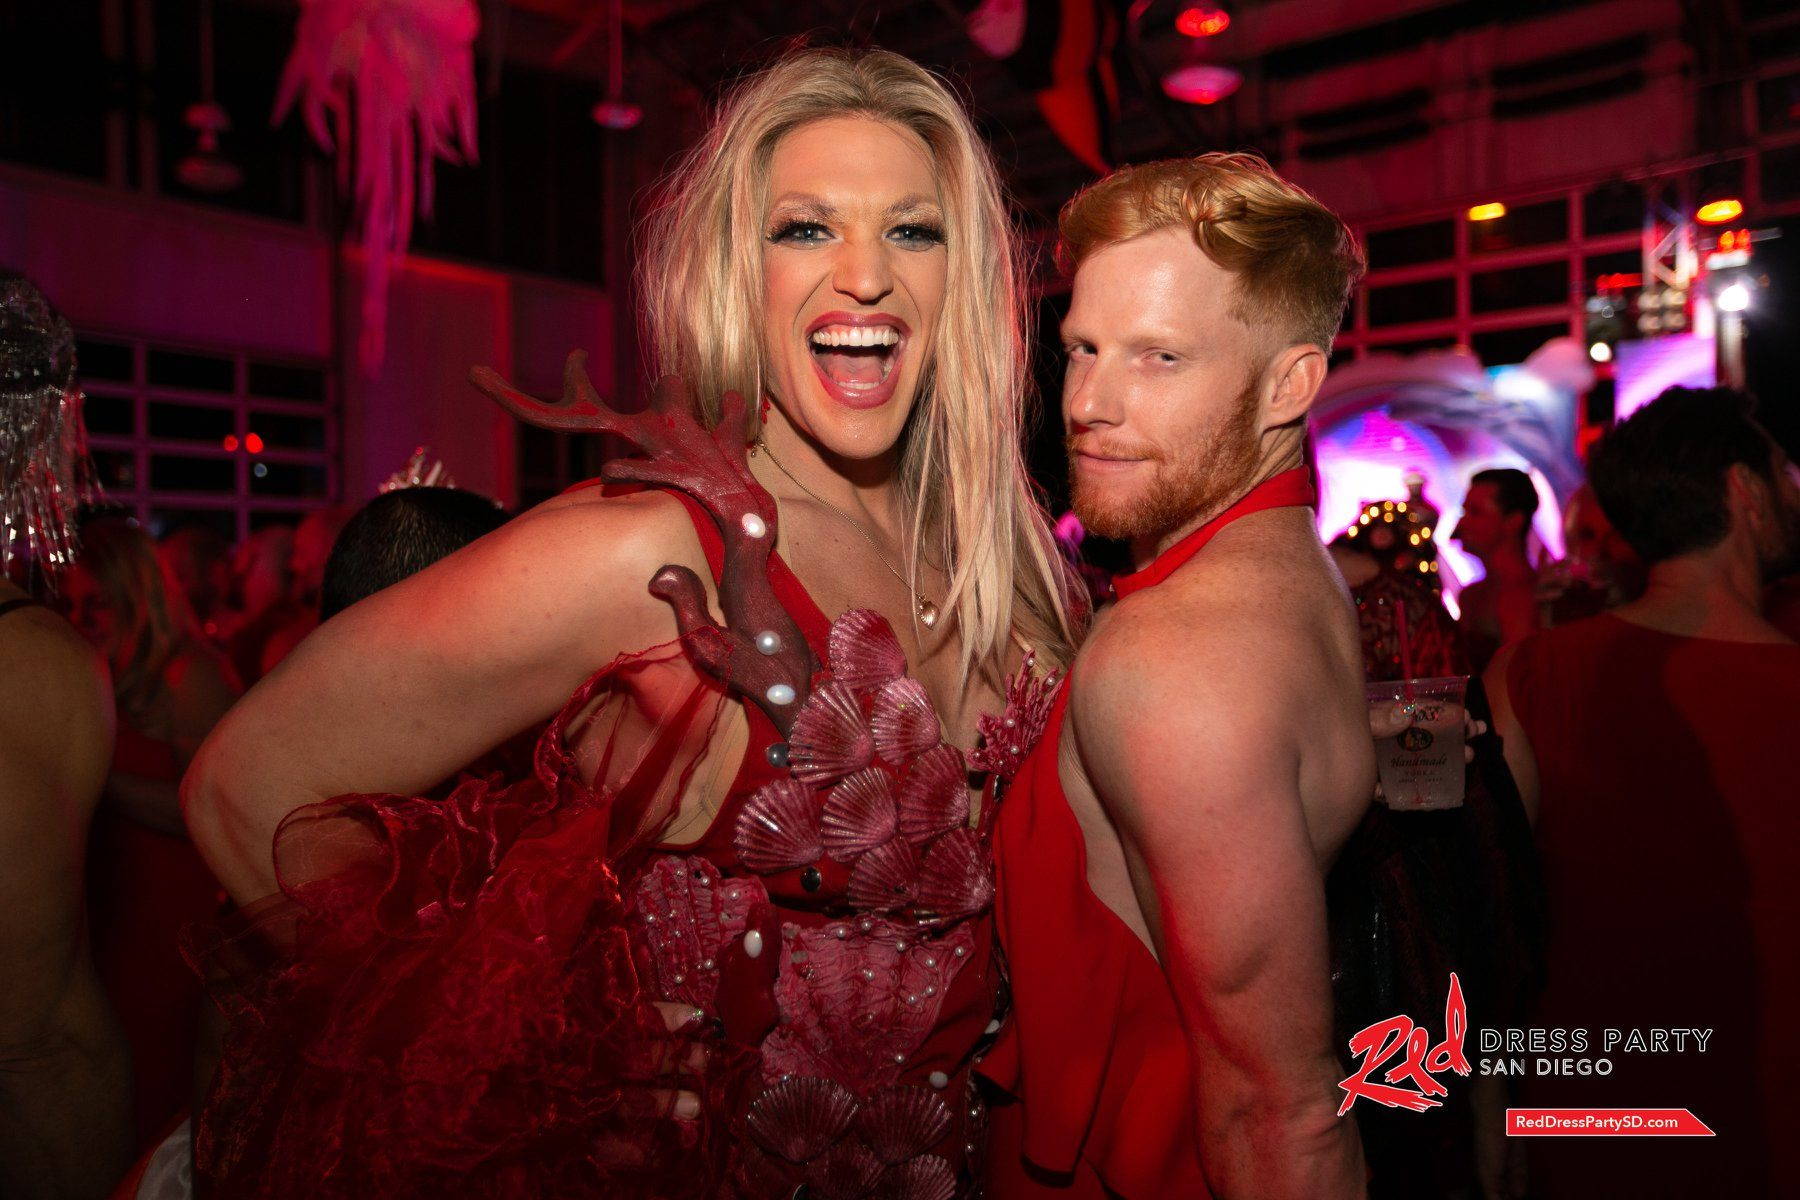 Red Dress Party San Diego 2019 - Events -